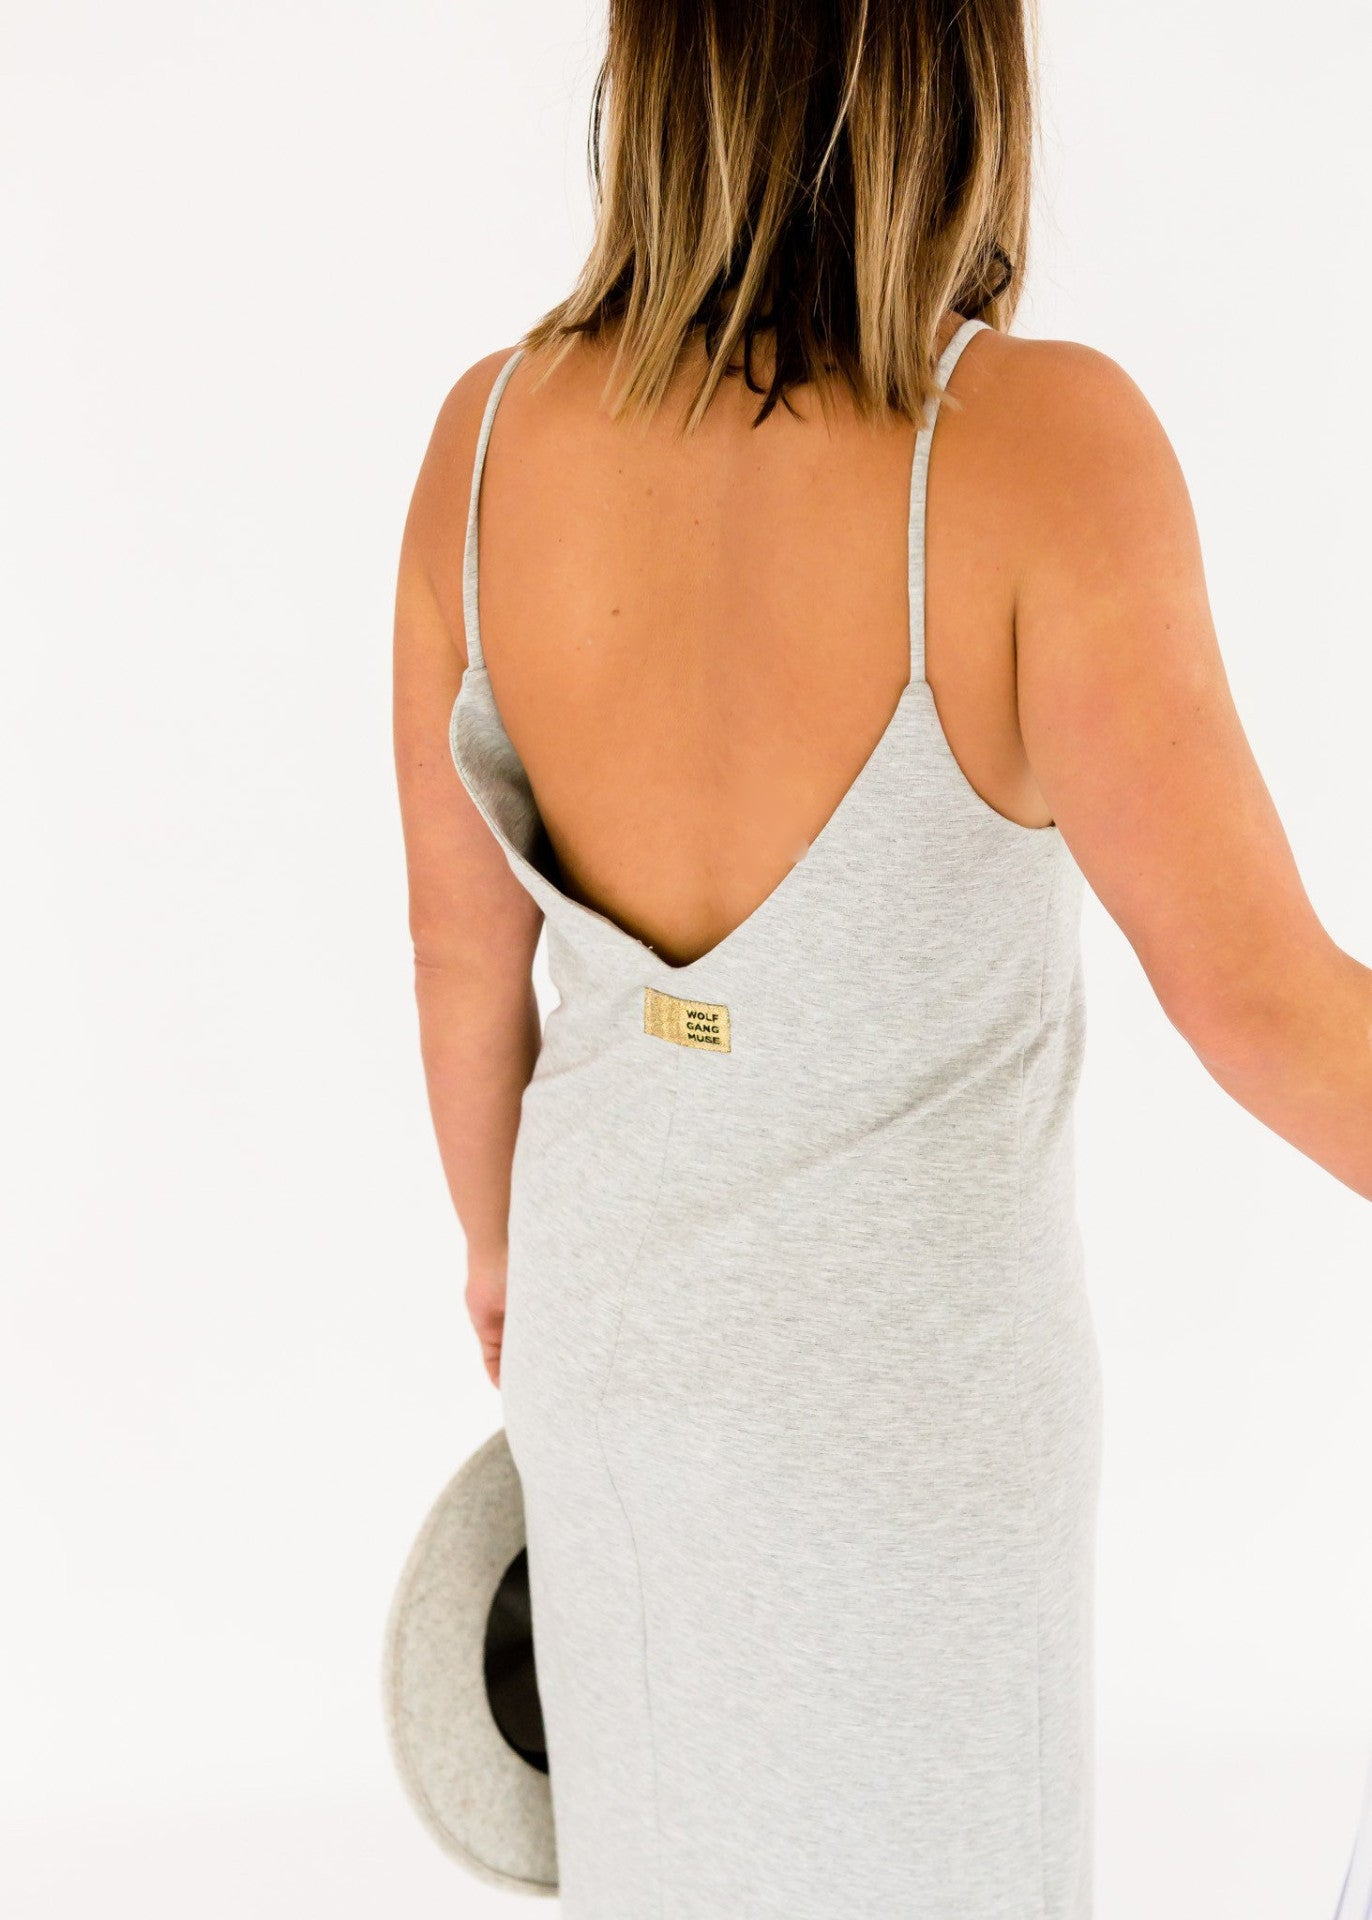 Dusk Till Dawn Slip Dress